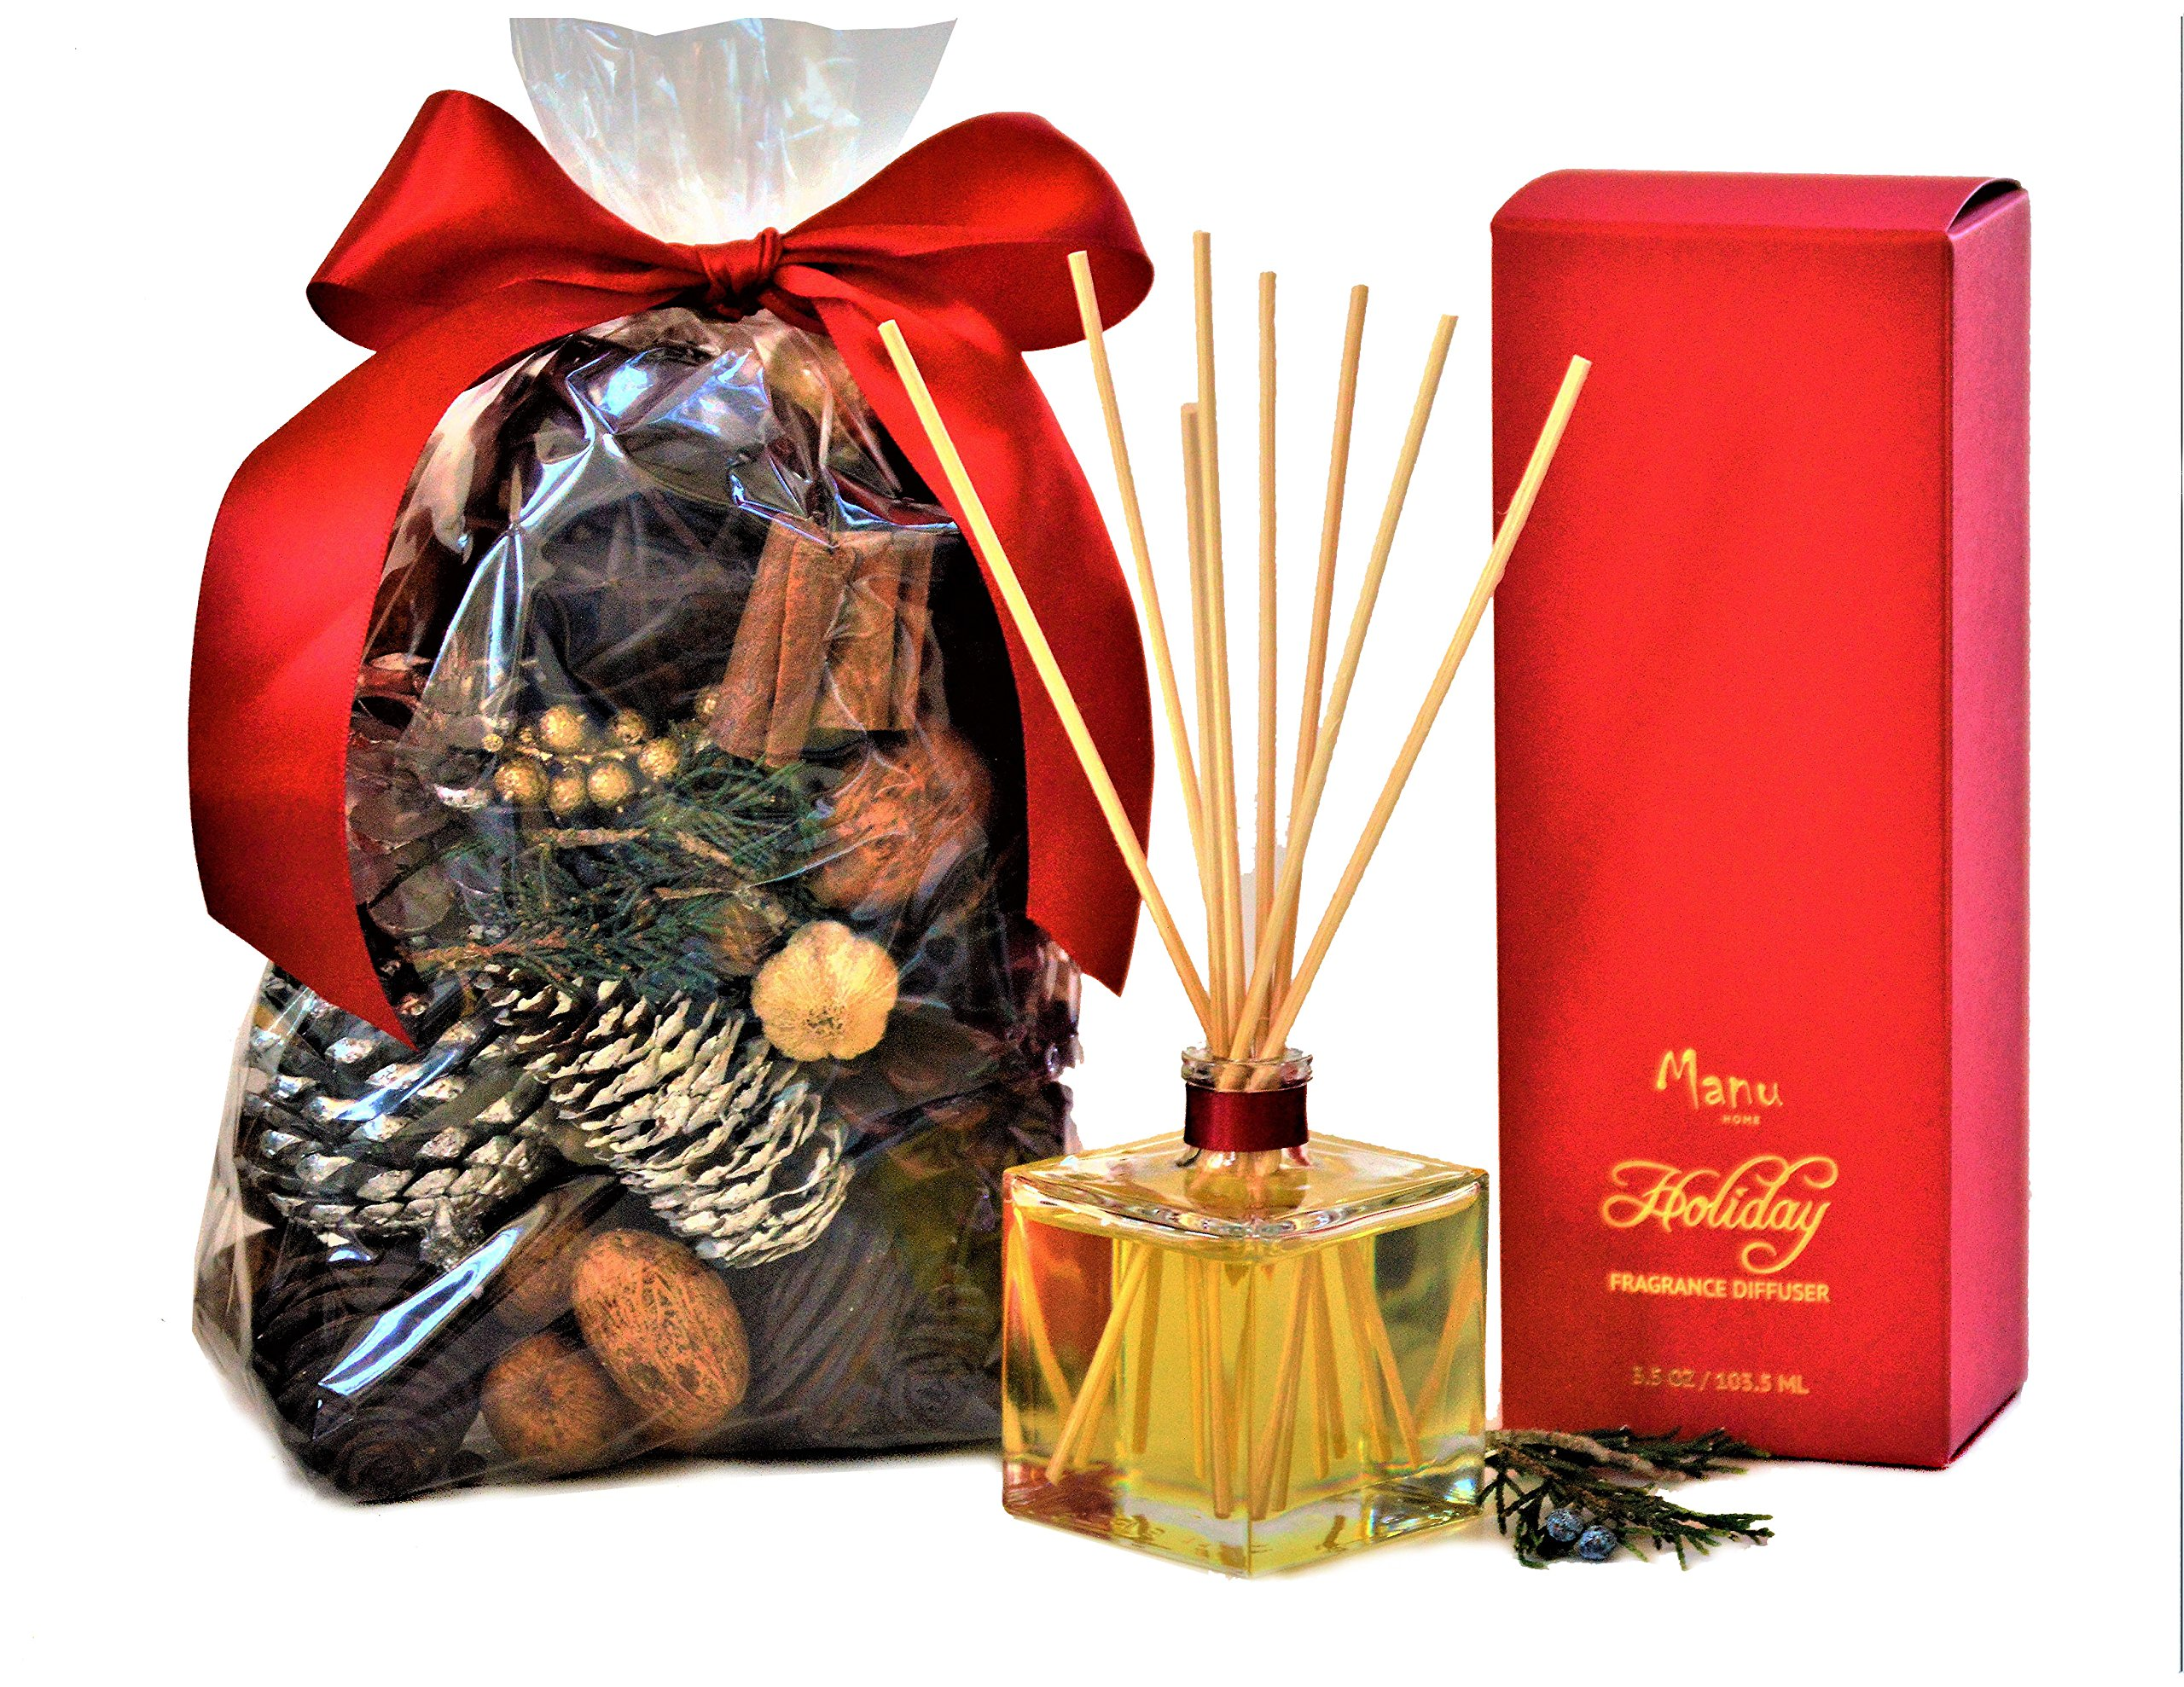 Manu Home Cinnamon & Clove Potpourri & Reed Diffuser Set~ Our Cinnamon Scent Offers a Holiday Glow with The Spicy Warmth of Real Imported Cinnamon and a hint of Clove.